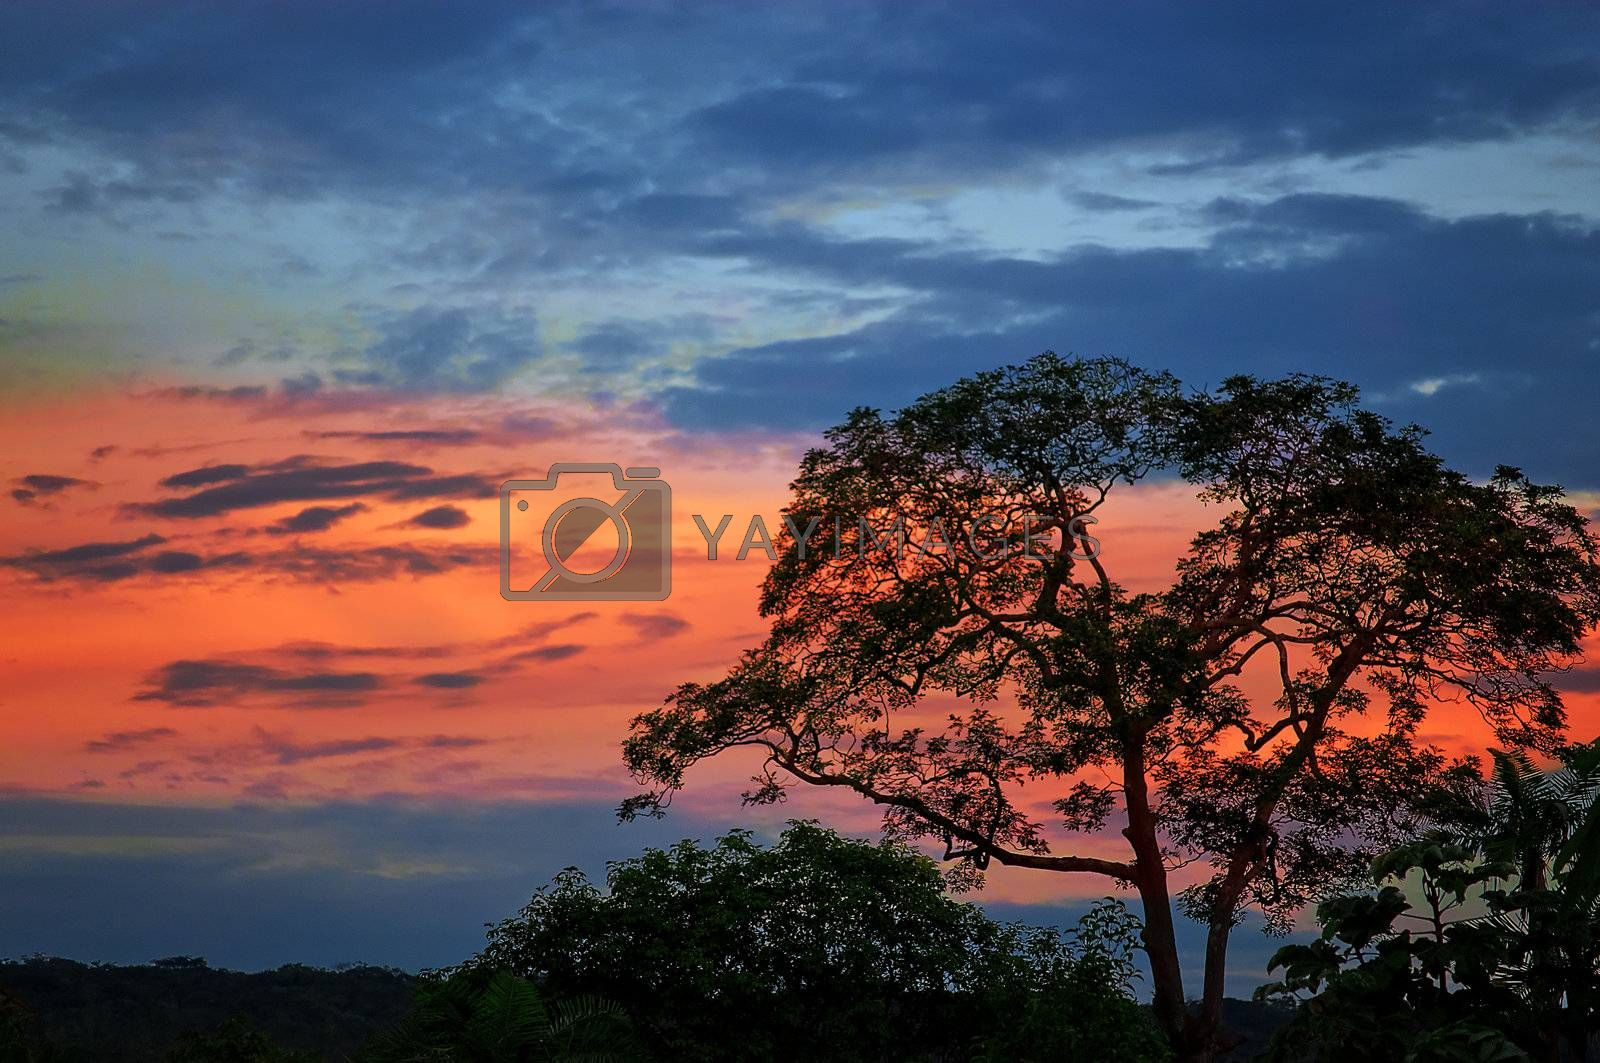 Dusk with a blue sky with a red band and the silhouette of a tree in the foreground.